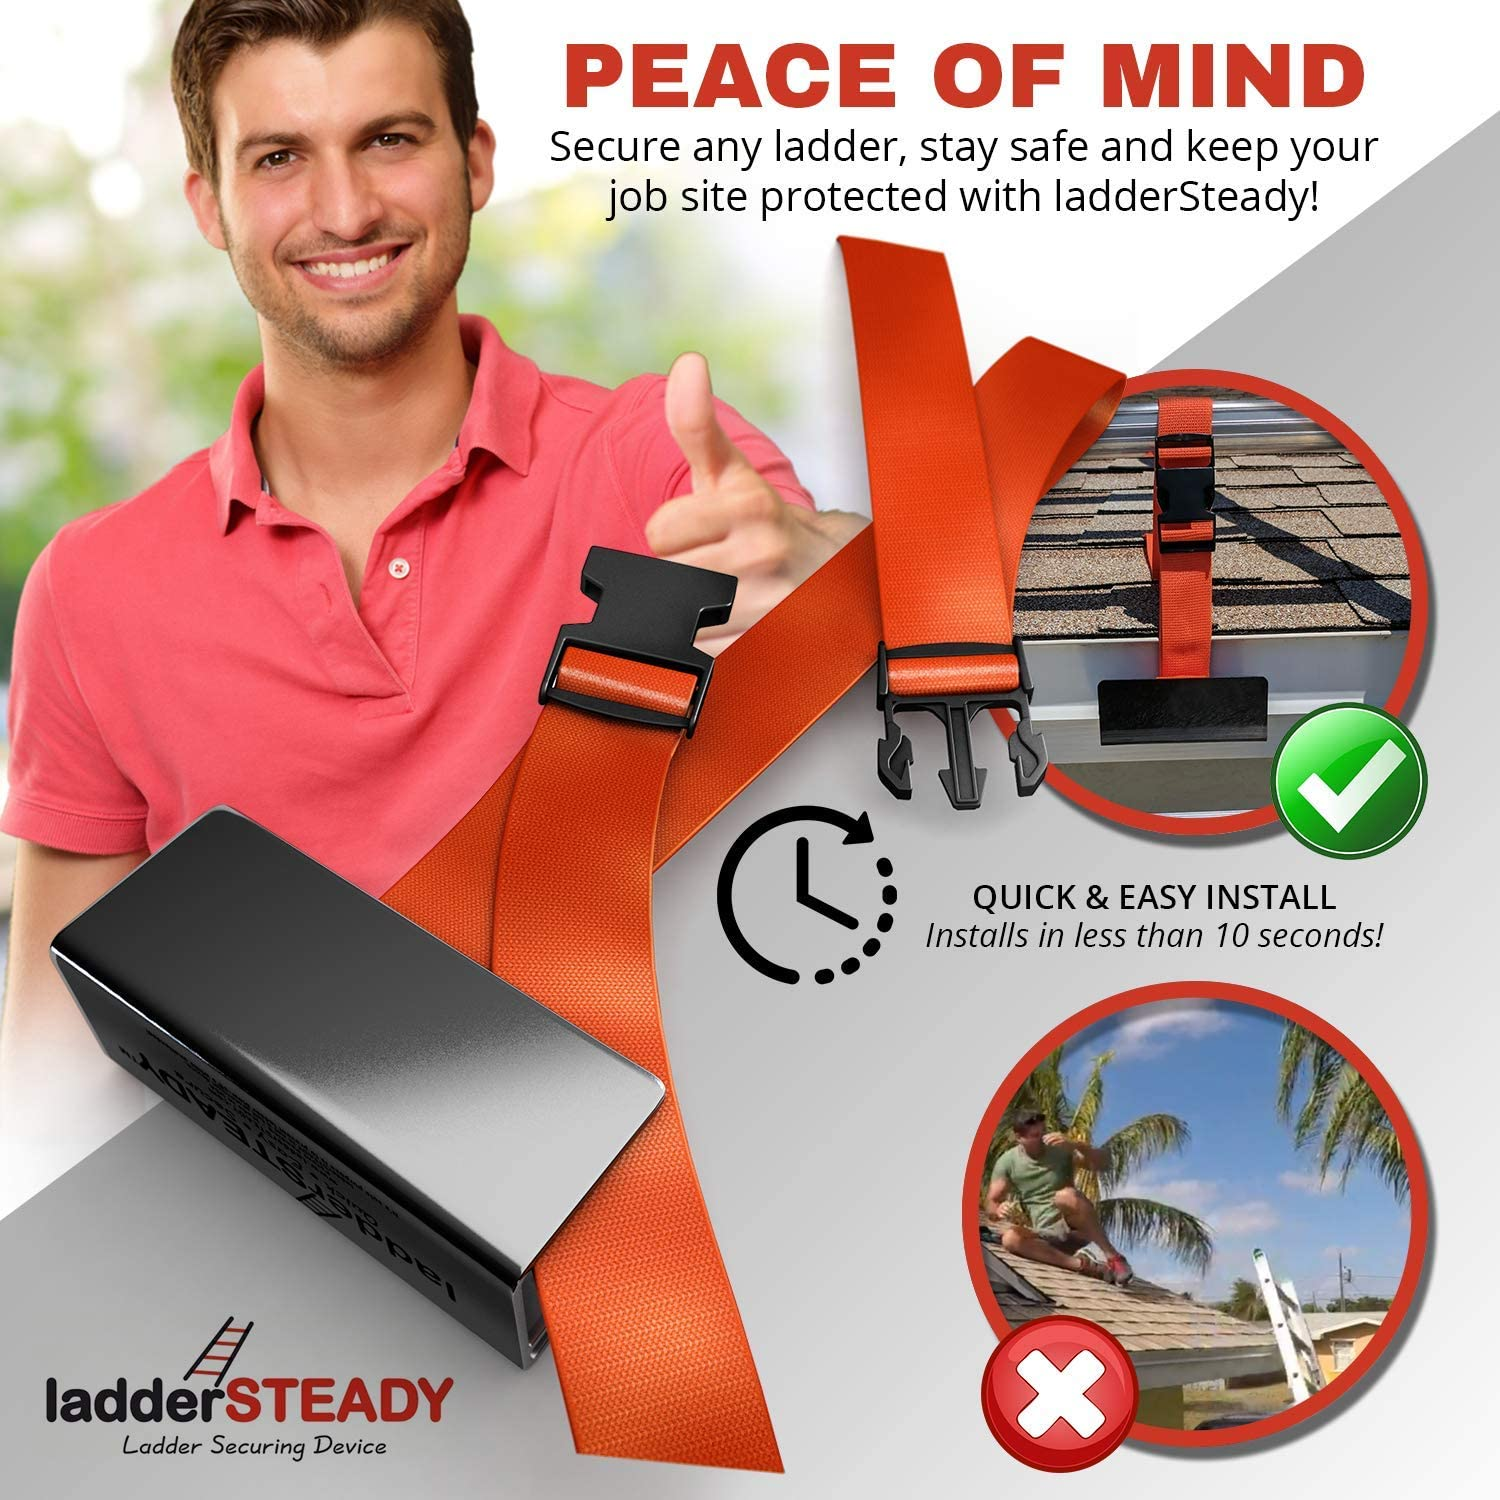 Contractors and Roof Work Quick and Easy Installation Lockdown Clamp Cleaning Gutters and Windows Ladder Securing Device ladderSTEADY Adjustable Stabilizer Strap with Uni-Clip Safety Bracket